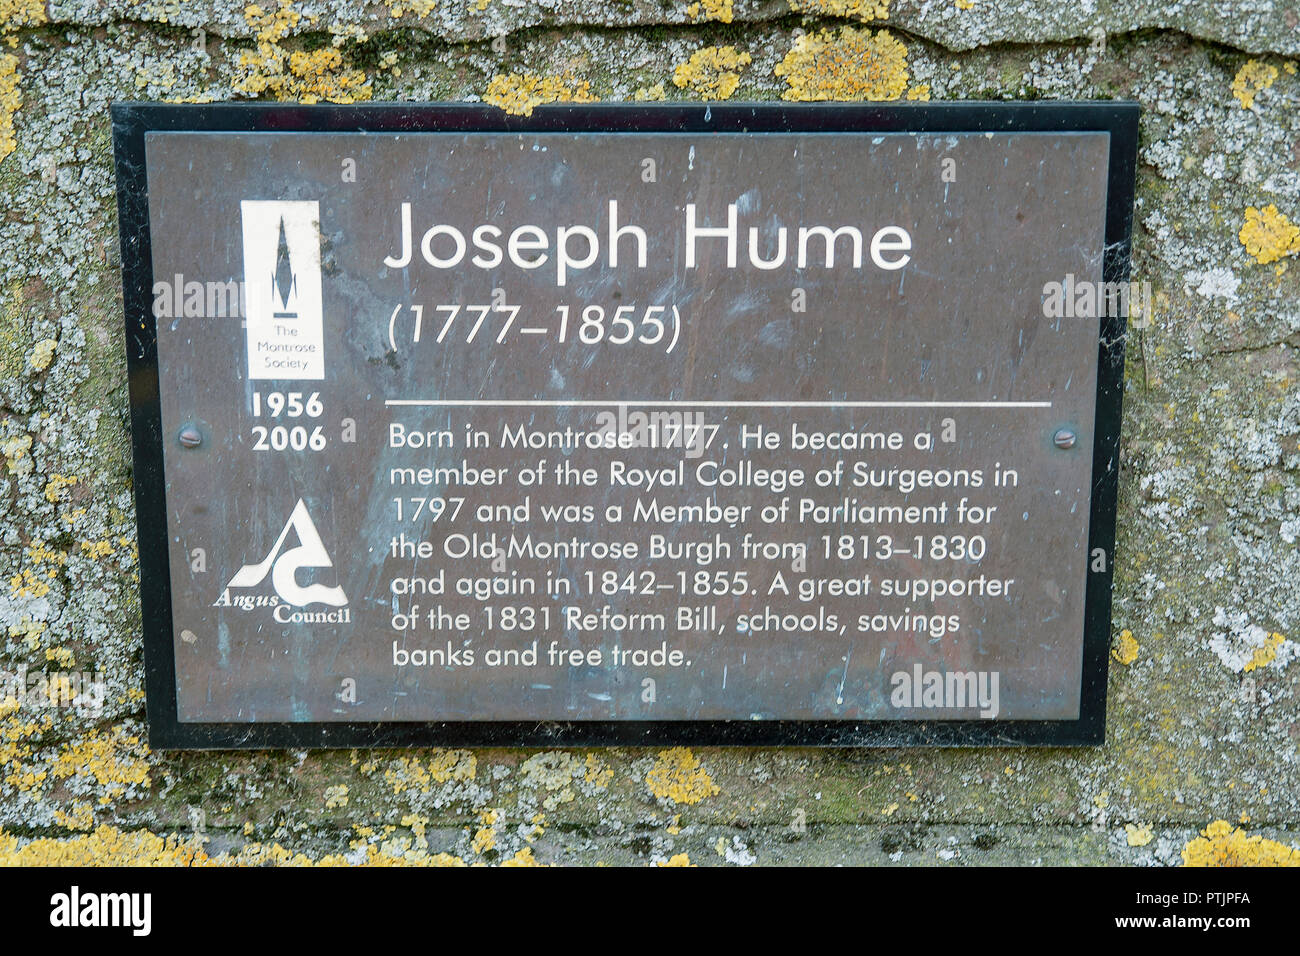 Plaque under statue of Joseph Hume born 1777 in Montrose, a previous Member of Parliament and Member of Royal College of Surgeons. - Stock Image